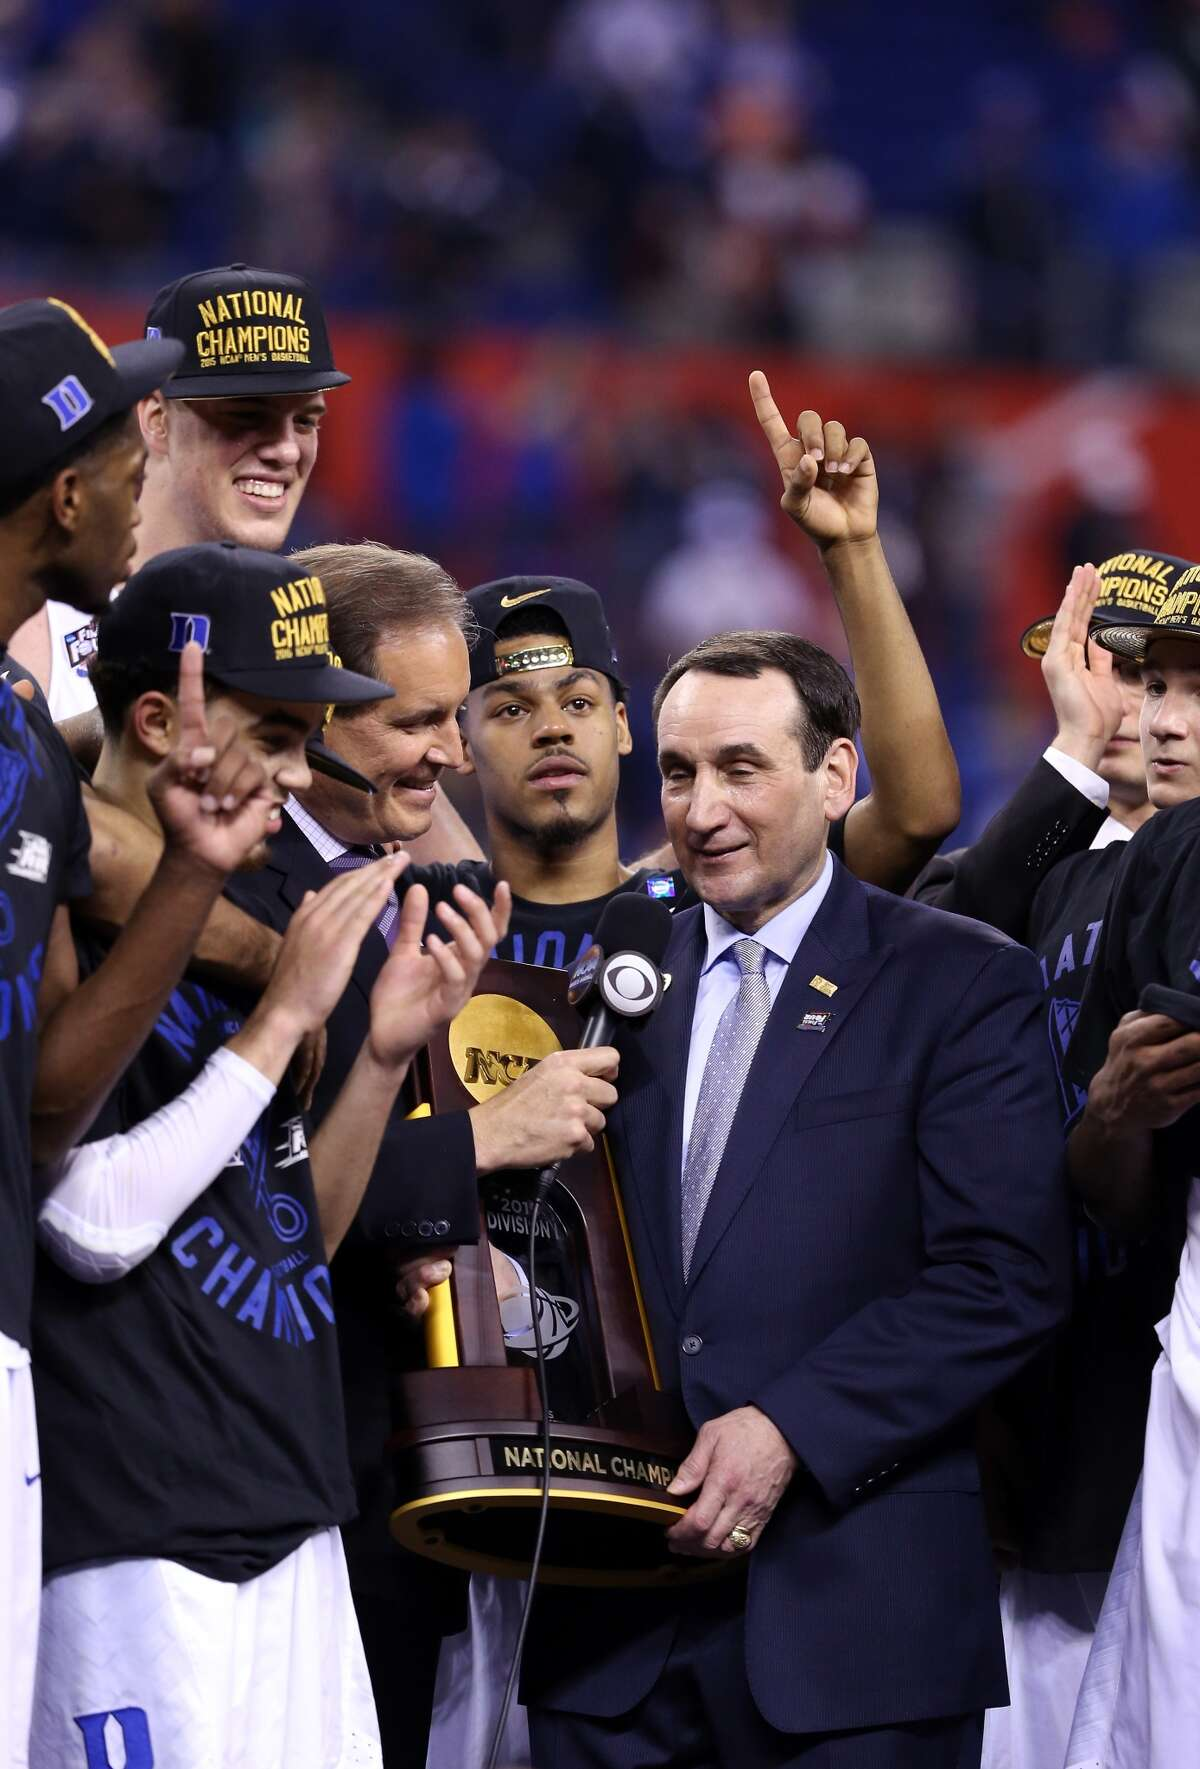 Jim Nantz interviews Duke coach Mike Krzyzewski after the Blue Devils' 68-63 victory over Wisconsin in the 2015 national championship game at Lucas Oil Field in Indianapolis. It was Krzyzewski's fifth NCAA championship. (Getty Images file photo)